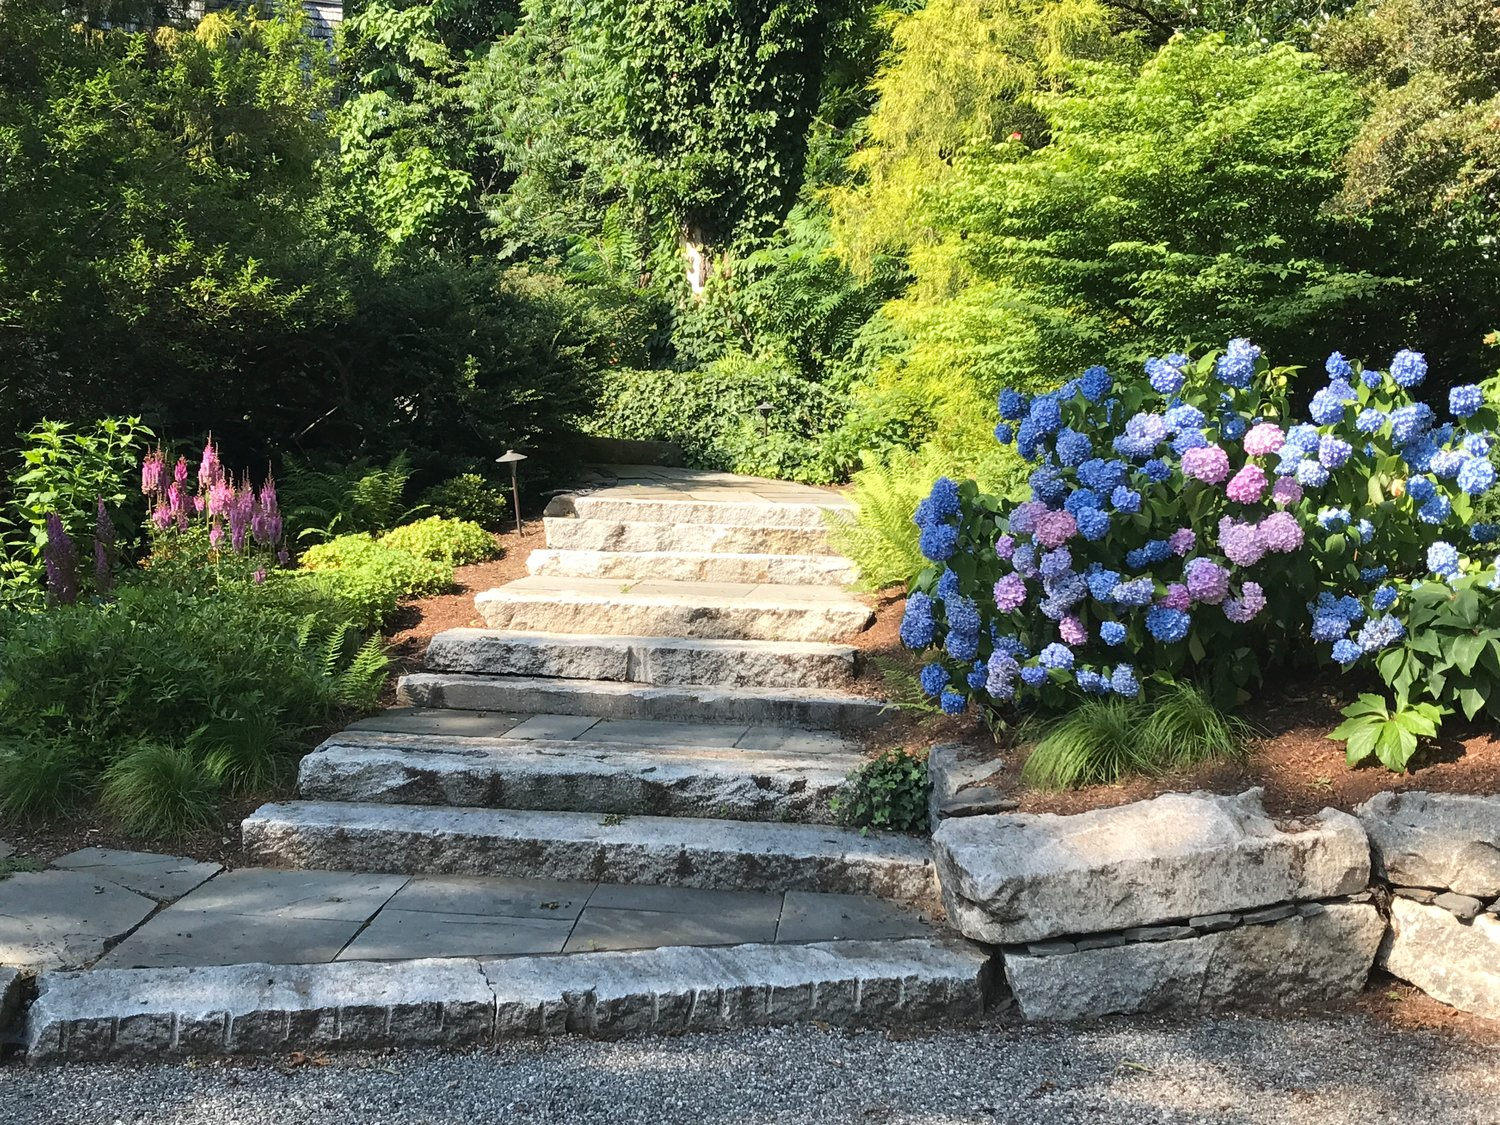 These stairs, fashioned from reclaimed granite, are set into the slope with lush plantings on both sides. This space is on the north side of the property, so plants that like shade were chosen for this area, including the bold and traditional New England hydrangea at the entrance.